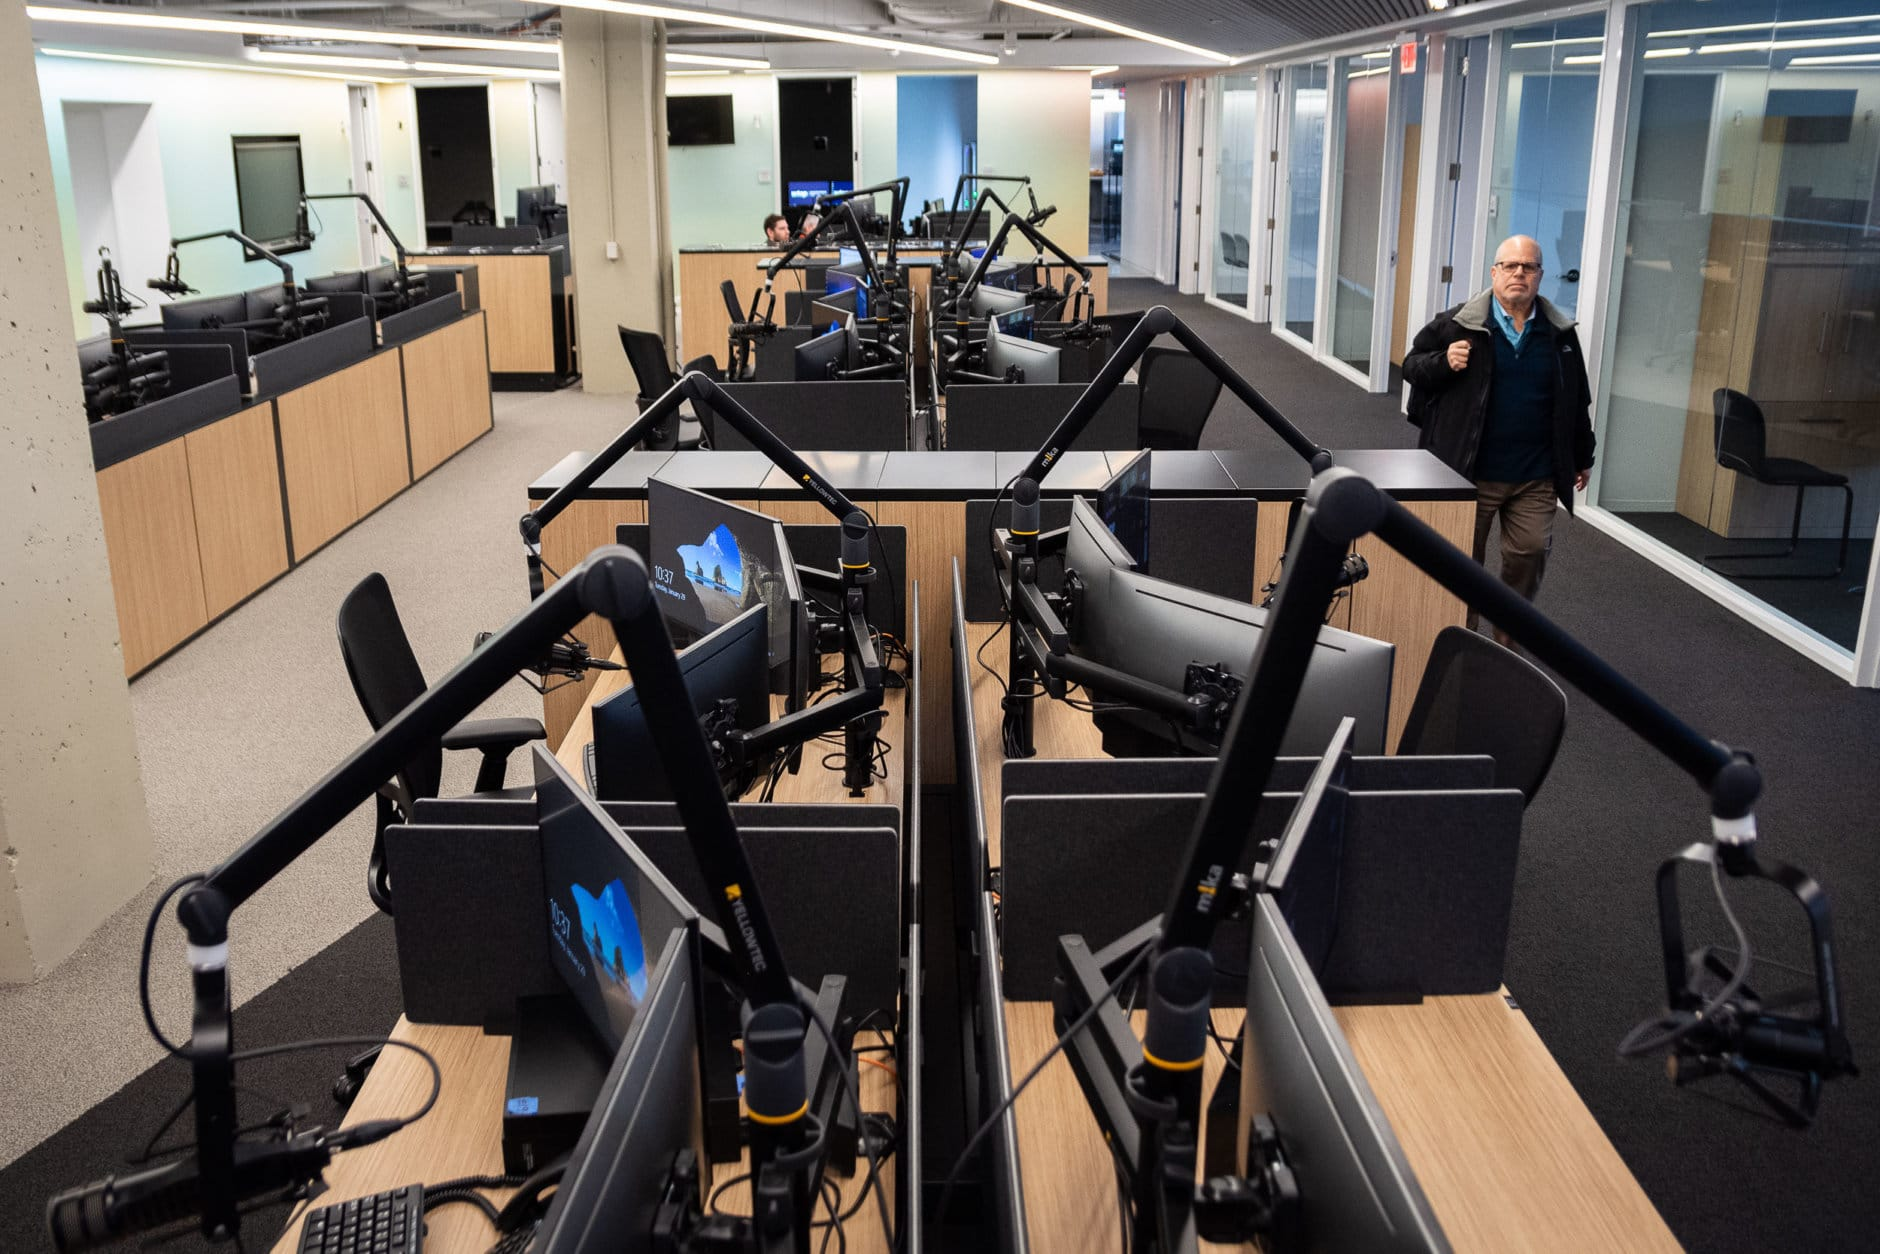 WTOP's new digital reporting and web development sections feature 24 work stations, all fitted with virtual mixers and microphones — a space age upgrade for the D.C. region's largest all-news format radio oulet. The new office space finally allows for all of WTOP's departments to coexist on the same floor, and is 8,000 square feet larger than the 30-year-old newsroom at Idaho Avenue.(WTOP/Alejandro Alvarez)